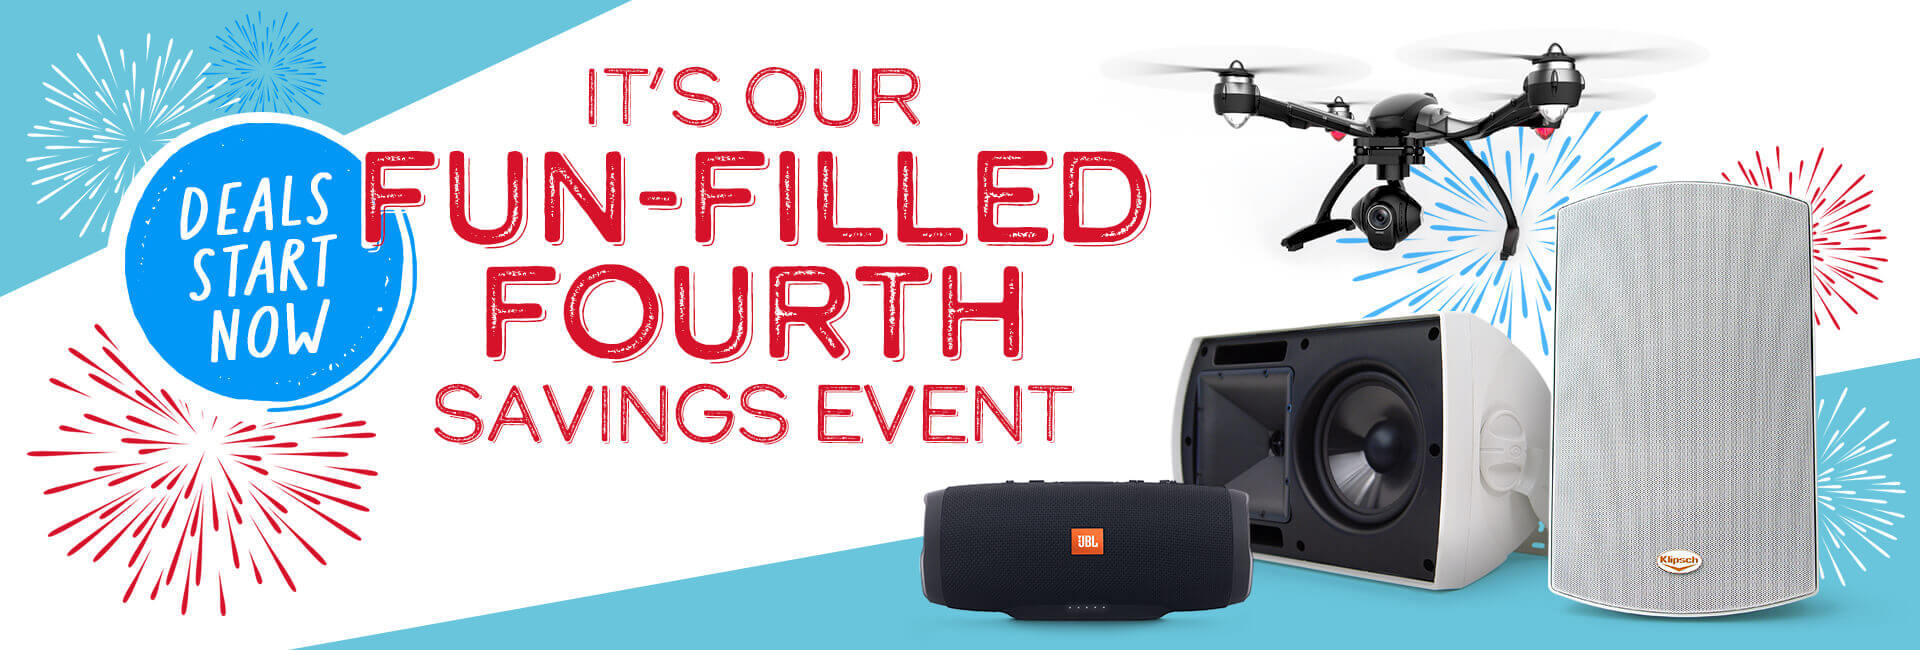 It's our FUN-FILLED FOURTH savings event